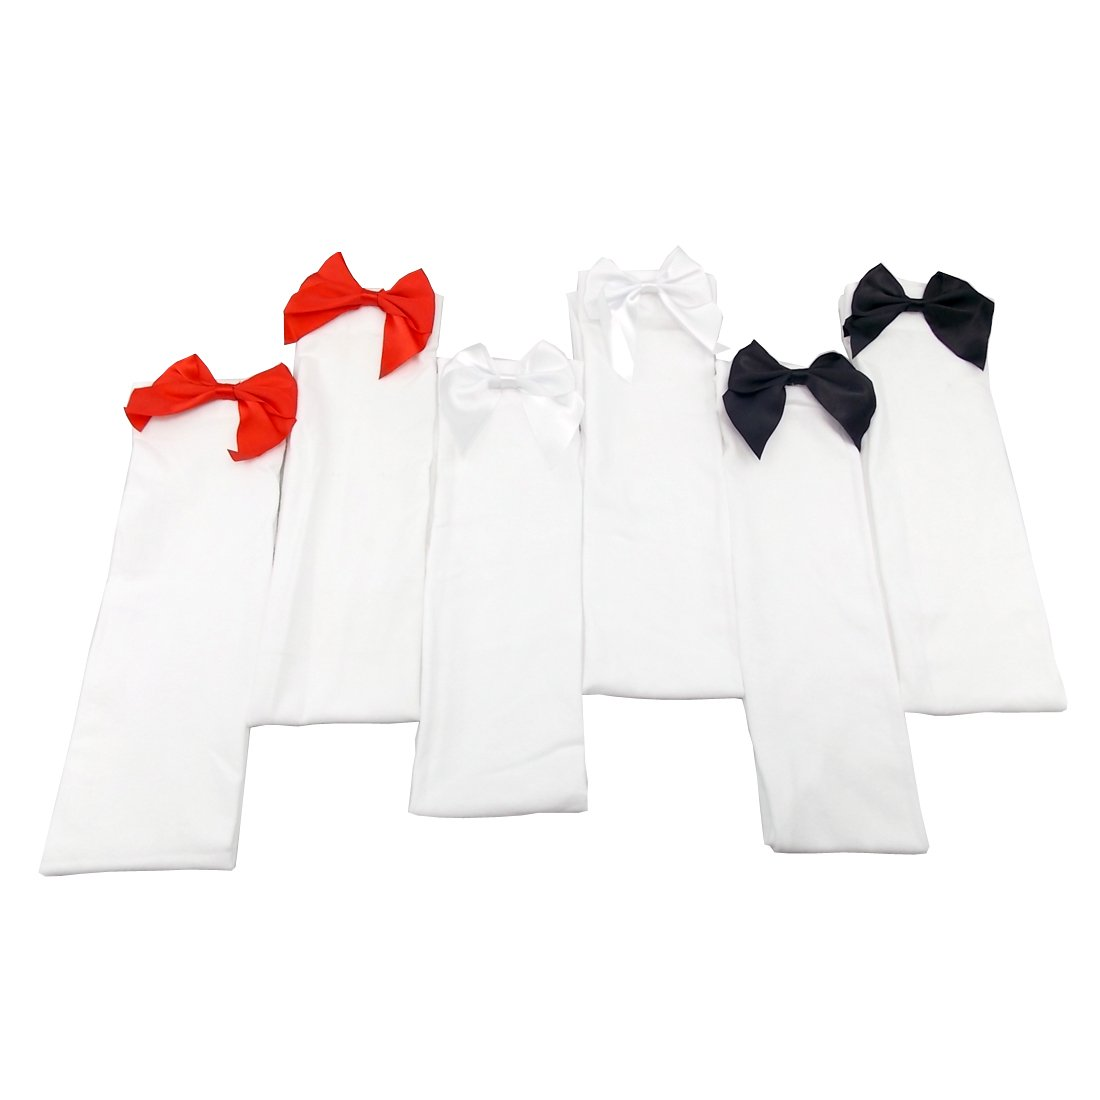 c2b06a94c9b69 JJOnlineStore - 1 pair White Stocking with Red Bows, 54cm Fits (5 to 8 UK):  Amazon.co.uk: Clothing